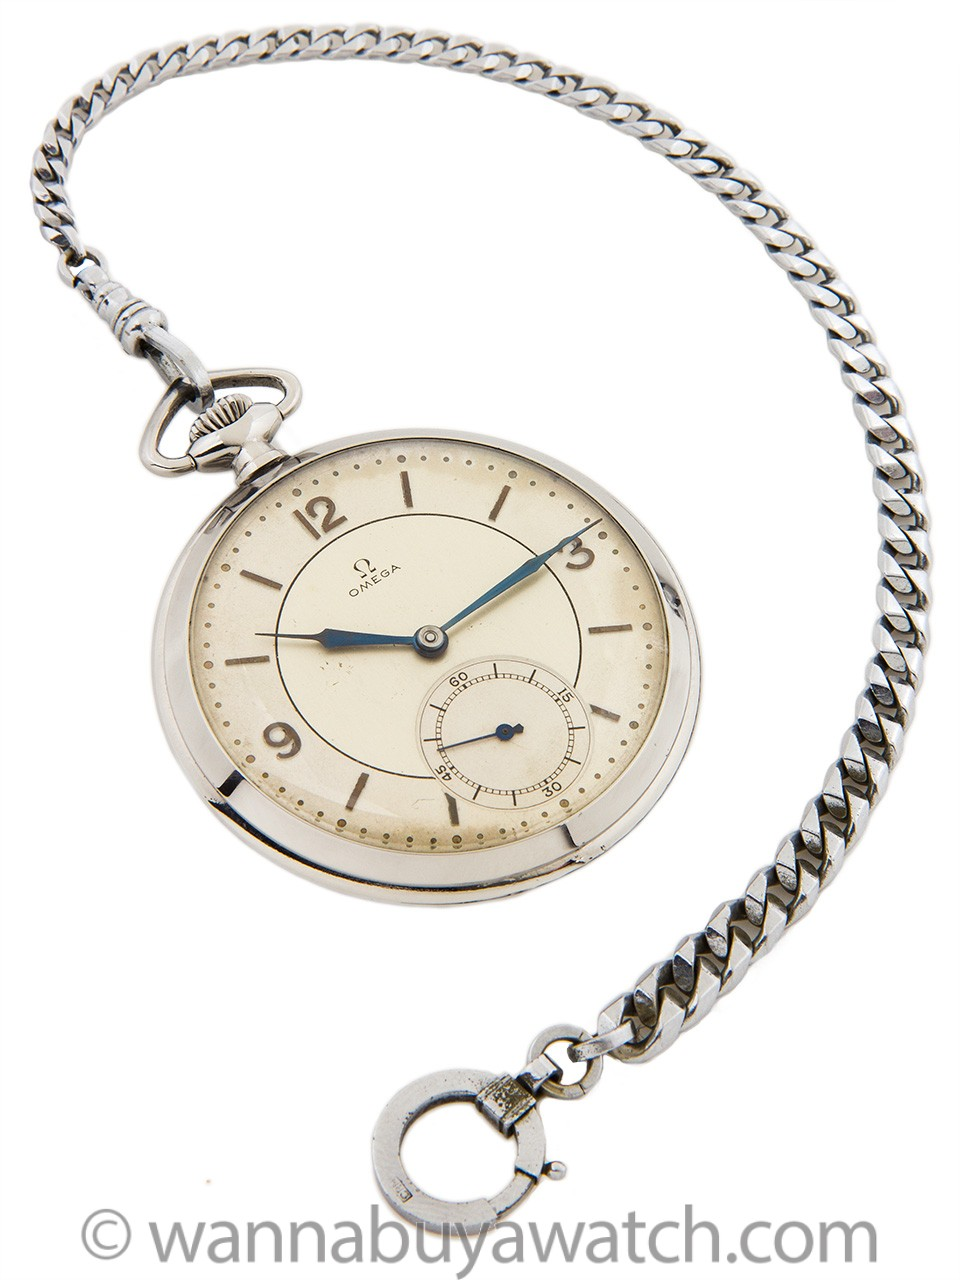 Omega Pocketwatch Stainless Steel circa 1930s